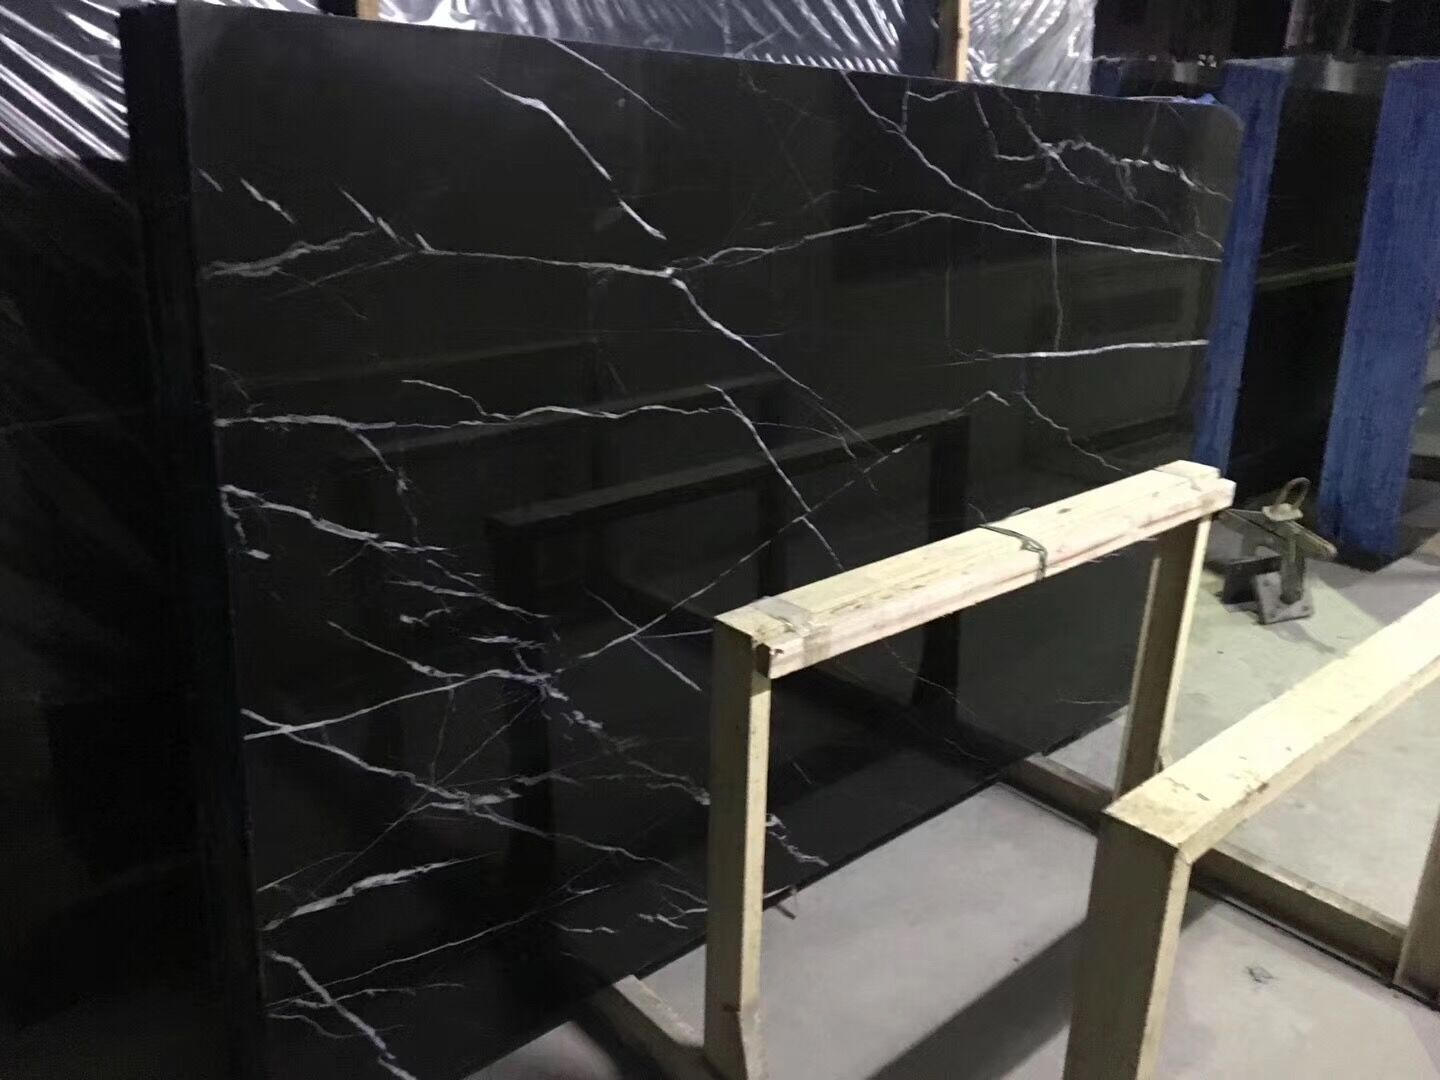 China black marble,marble nero,marble black marquina,nero black marble tile,black marquina granite,marble cladding,marble marquina